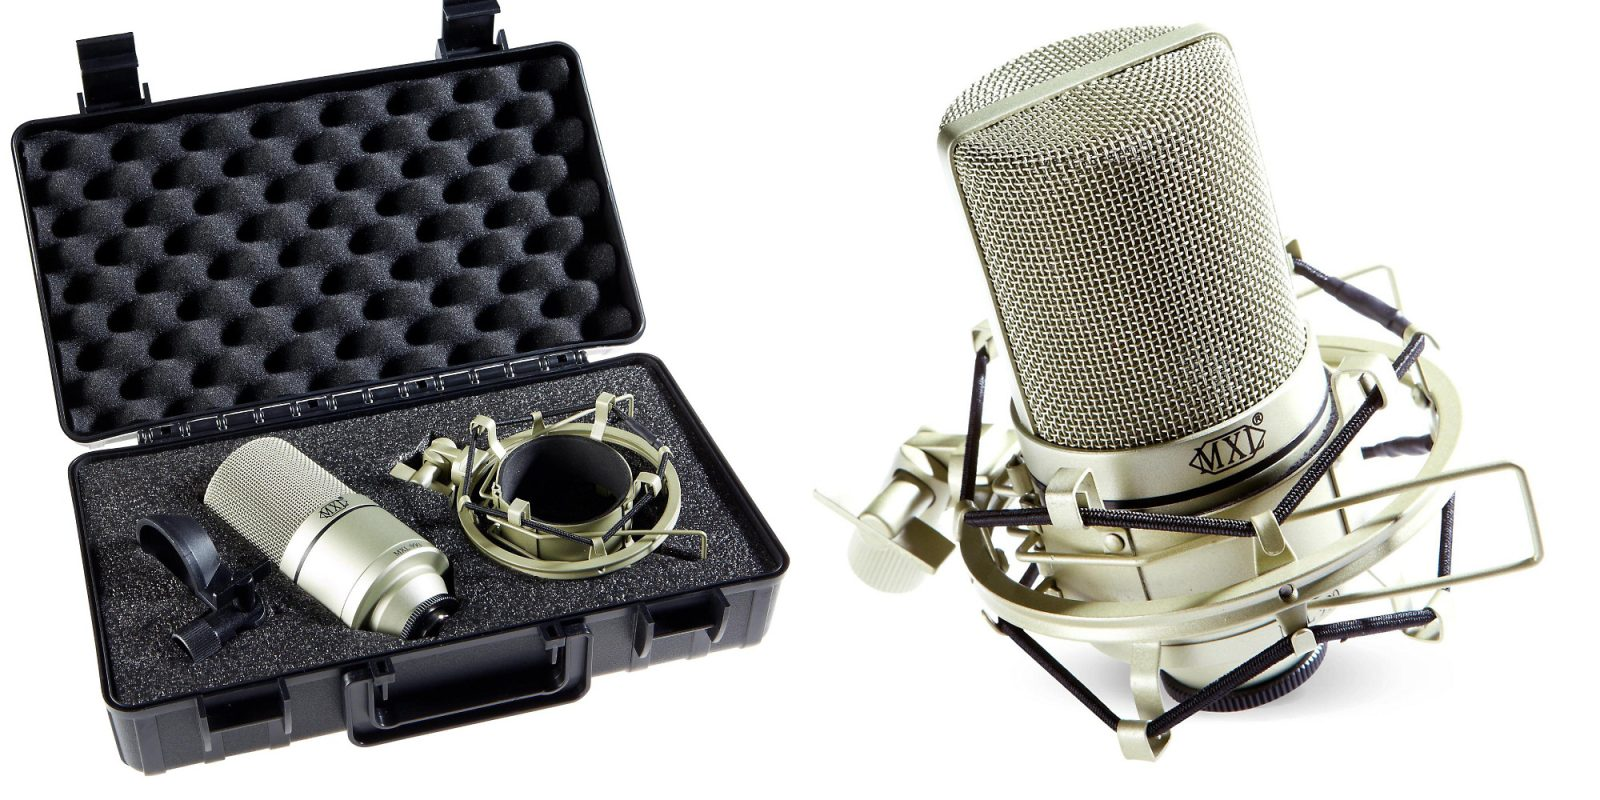 the mxl 990 mic kit includes a shock mount carrying case and more for 60 reg 100 9to5toys. Black Bedroom Furniture Sets. Home Design Ideas